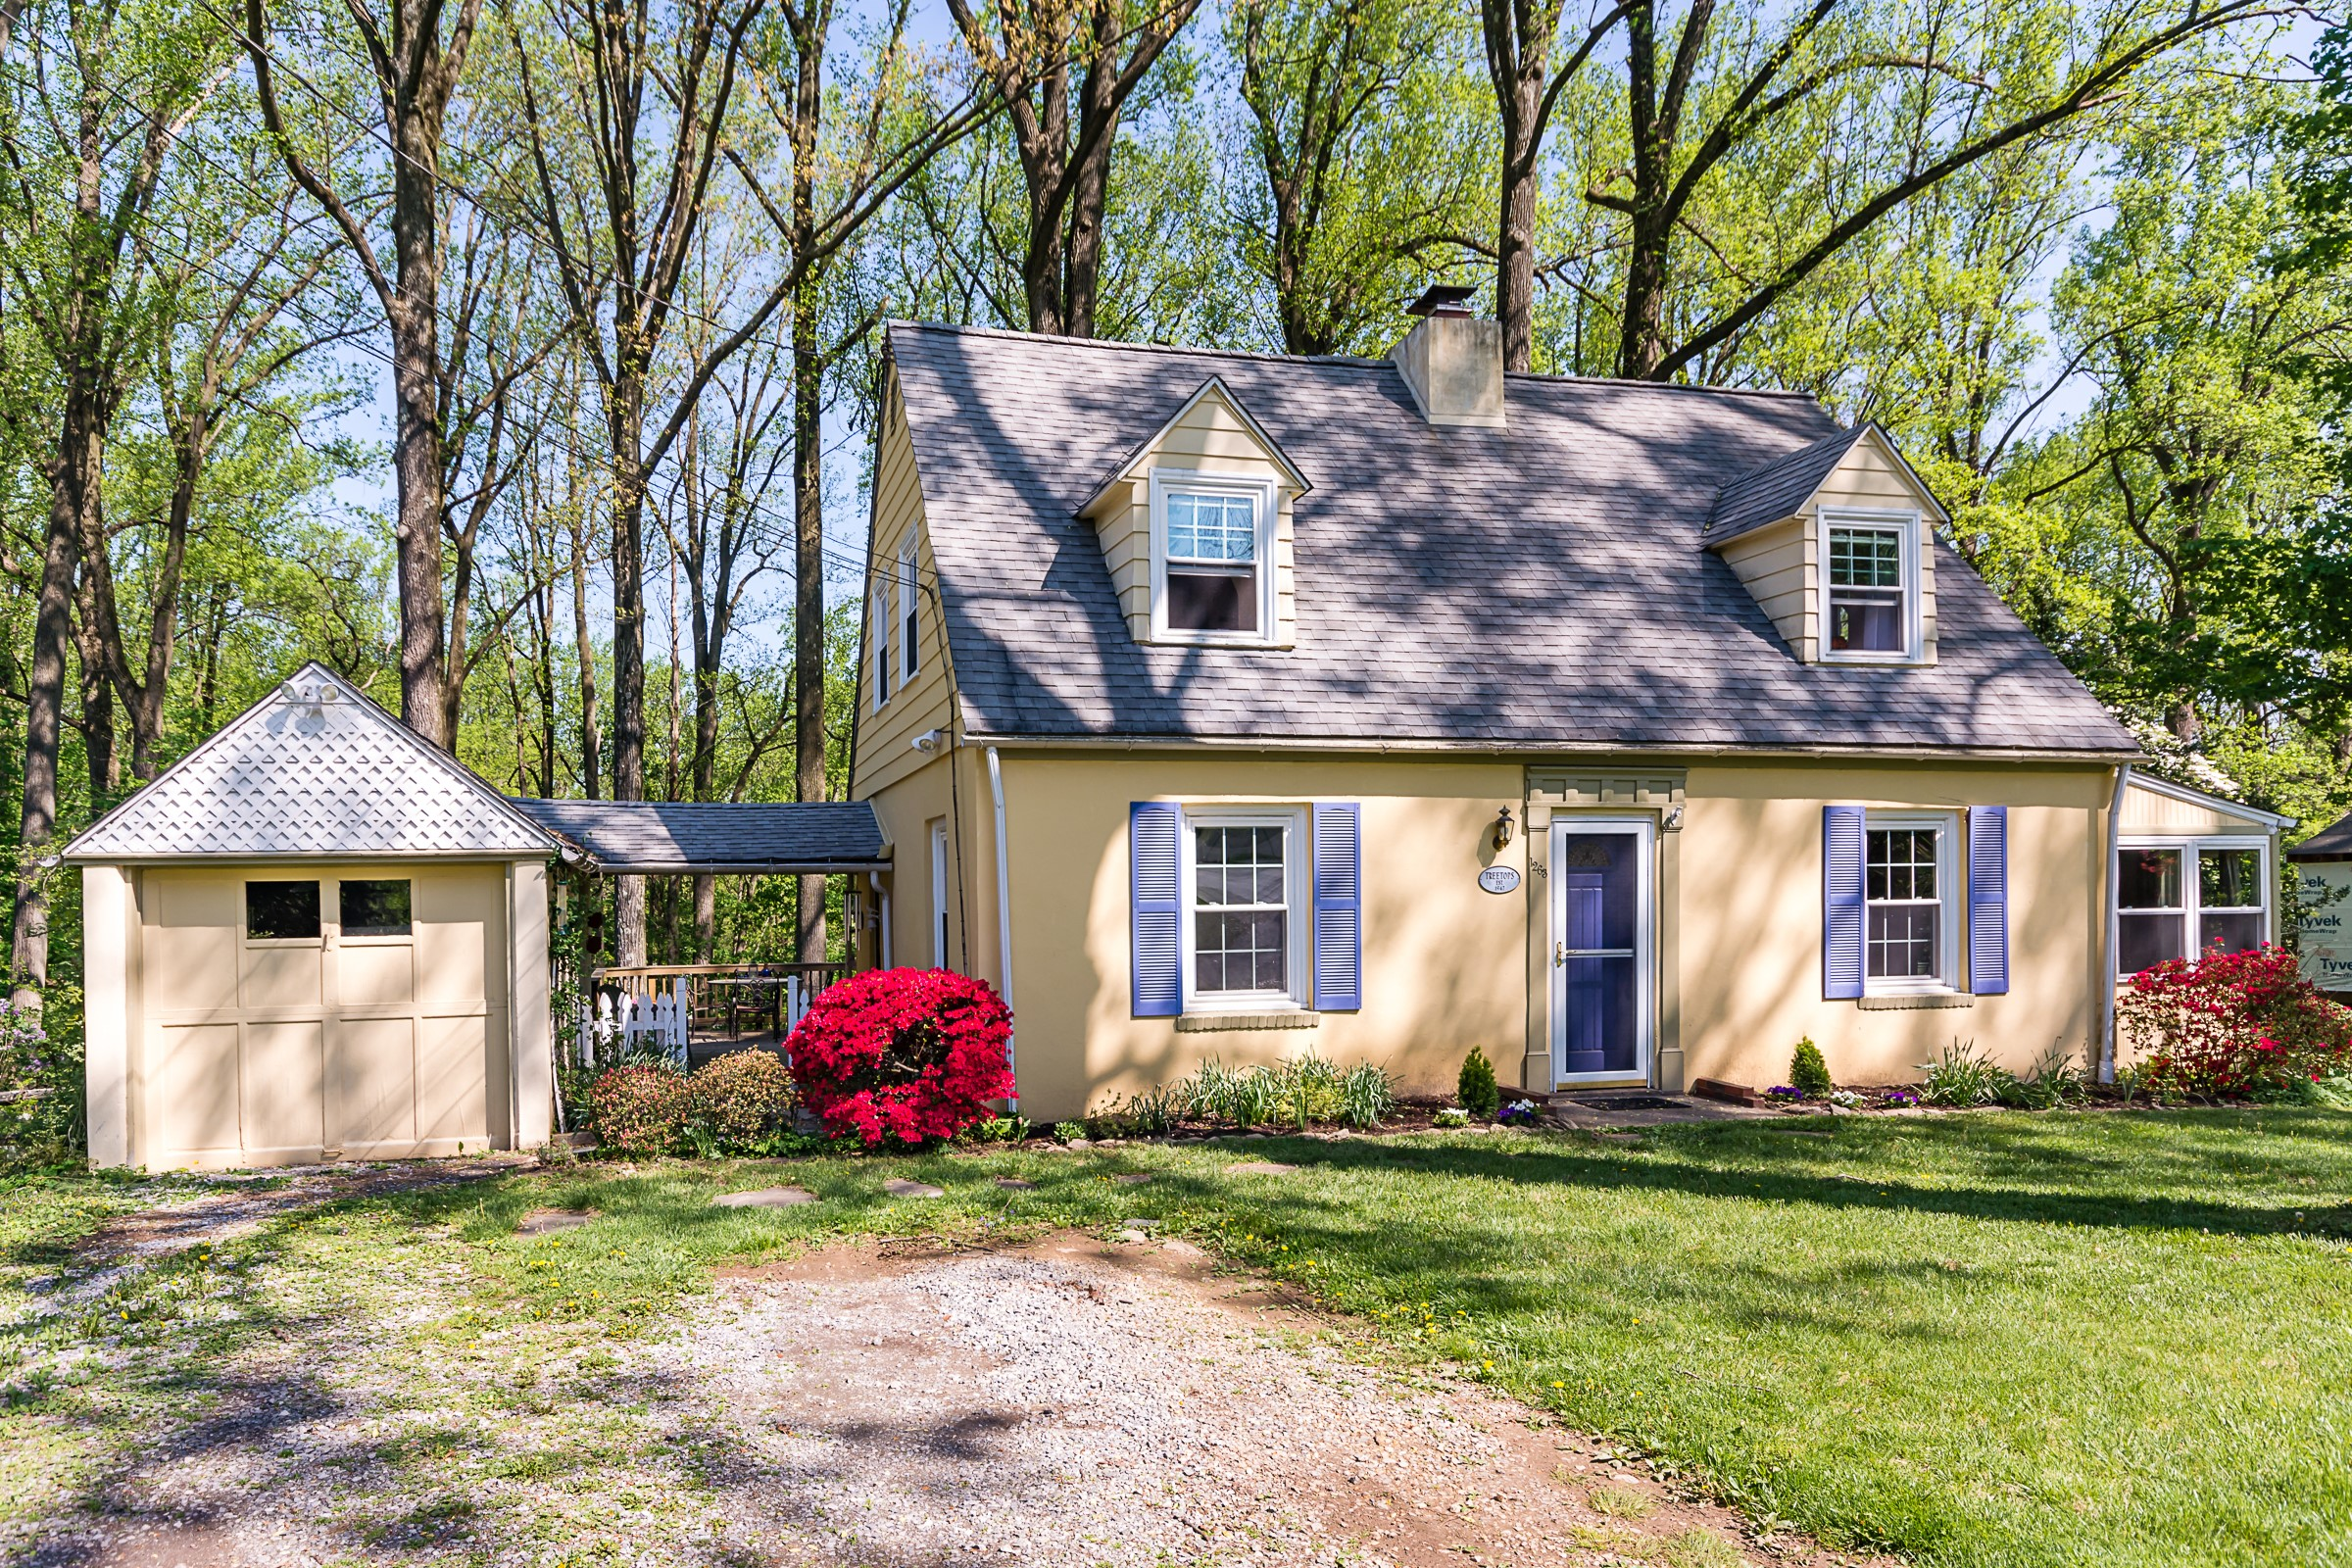 Located in Berwyn in the Tredyffrin/Easttown School District, this three-bedroom, two-bathroom home was priced at $410,000 for 1,302 square feet. It went under agreement within six days.